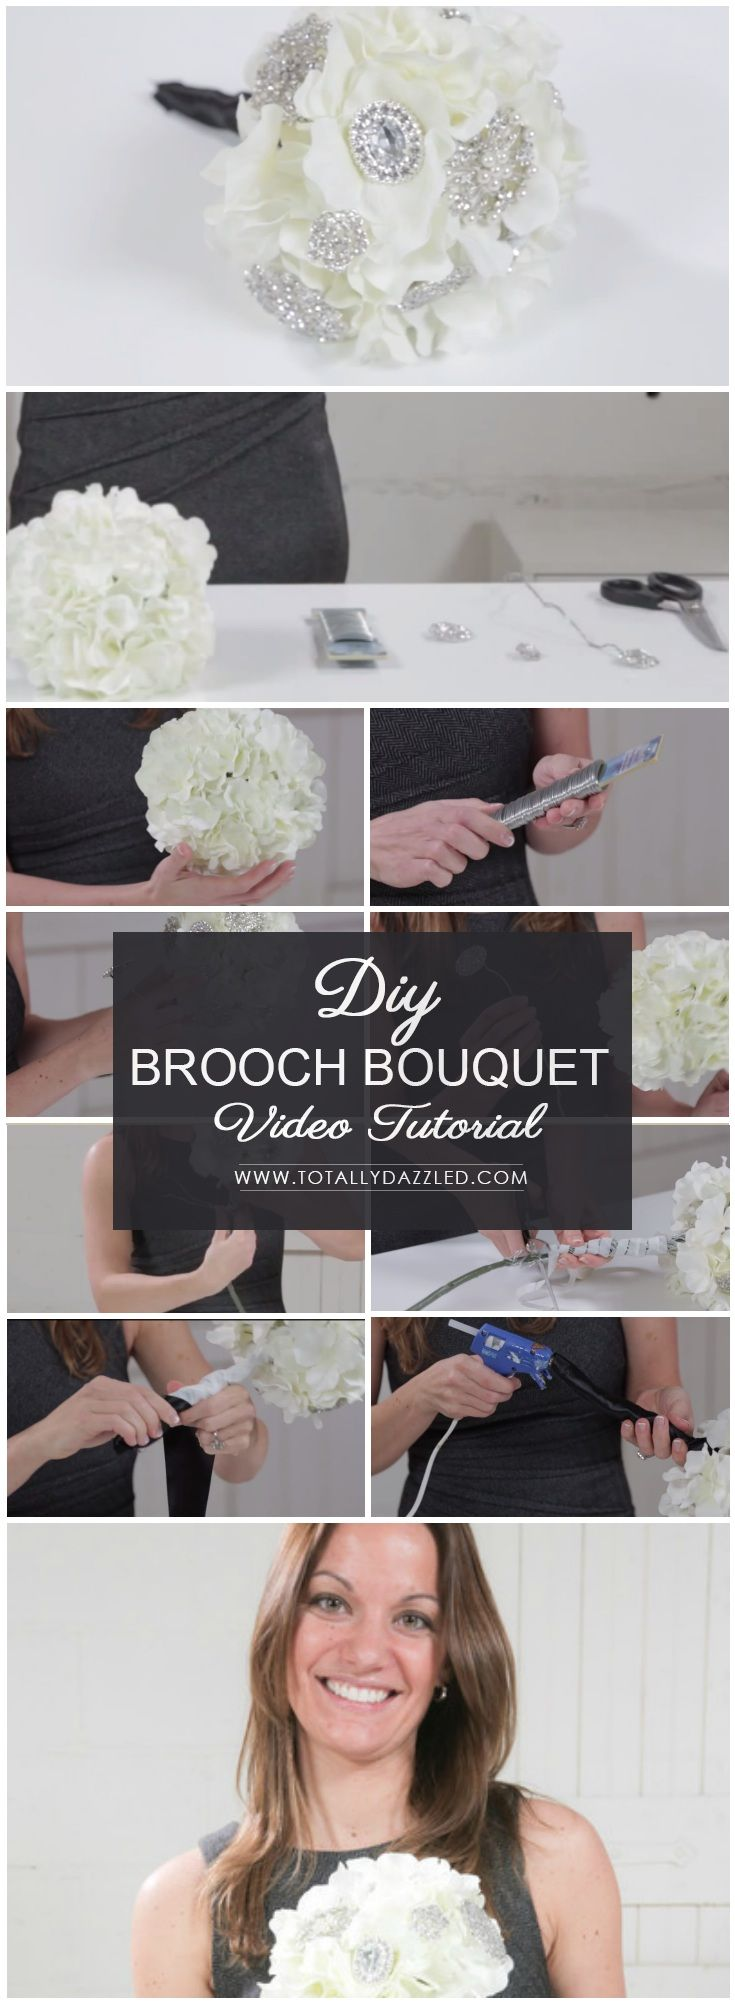 Free DIY Simple Brooch Bouquet Tutorial Video! www.totallydazzled.com